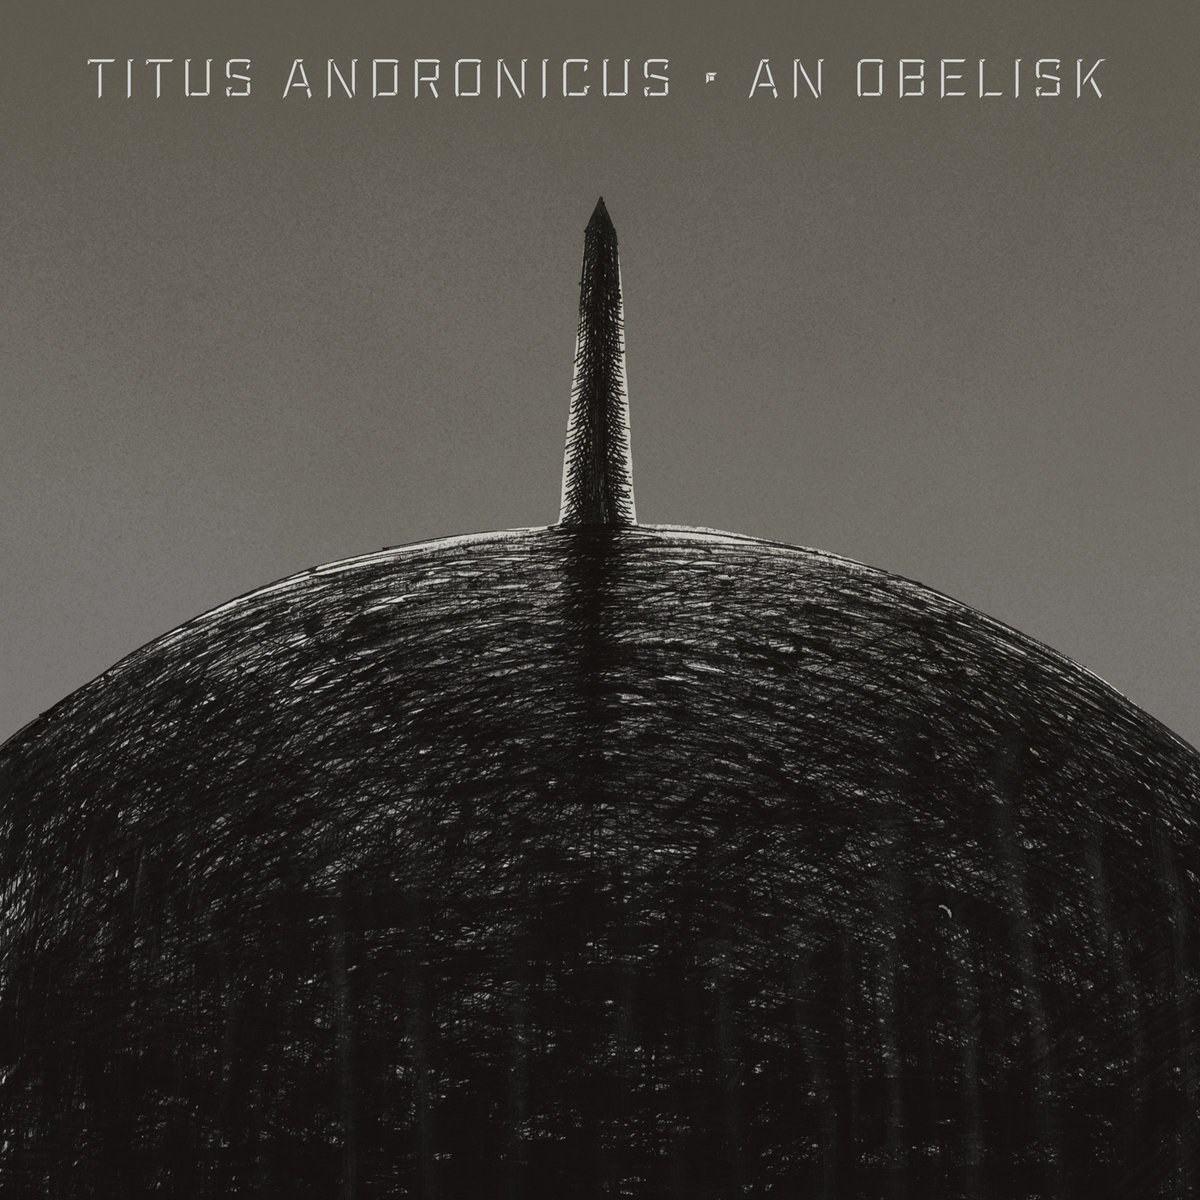 'An Obelisk' finds Titus Andronicus at their most direct, a whip-smart punk assault